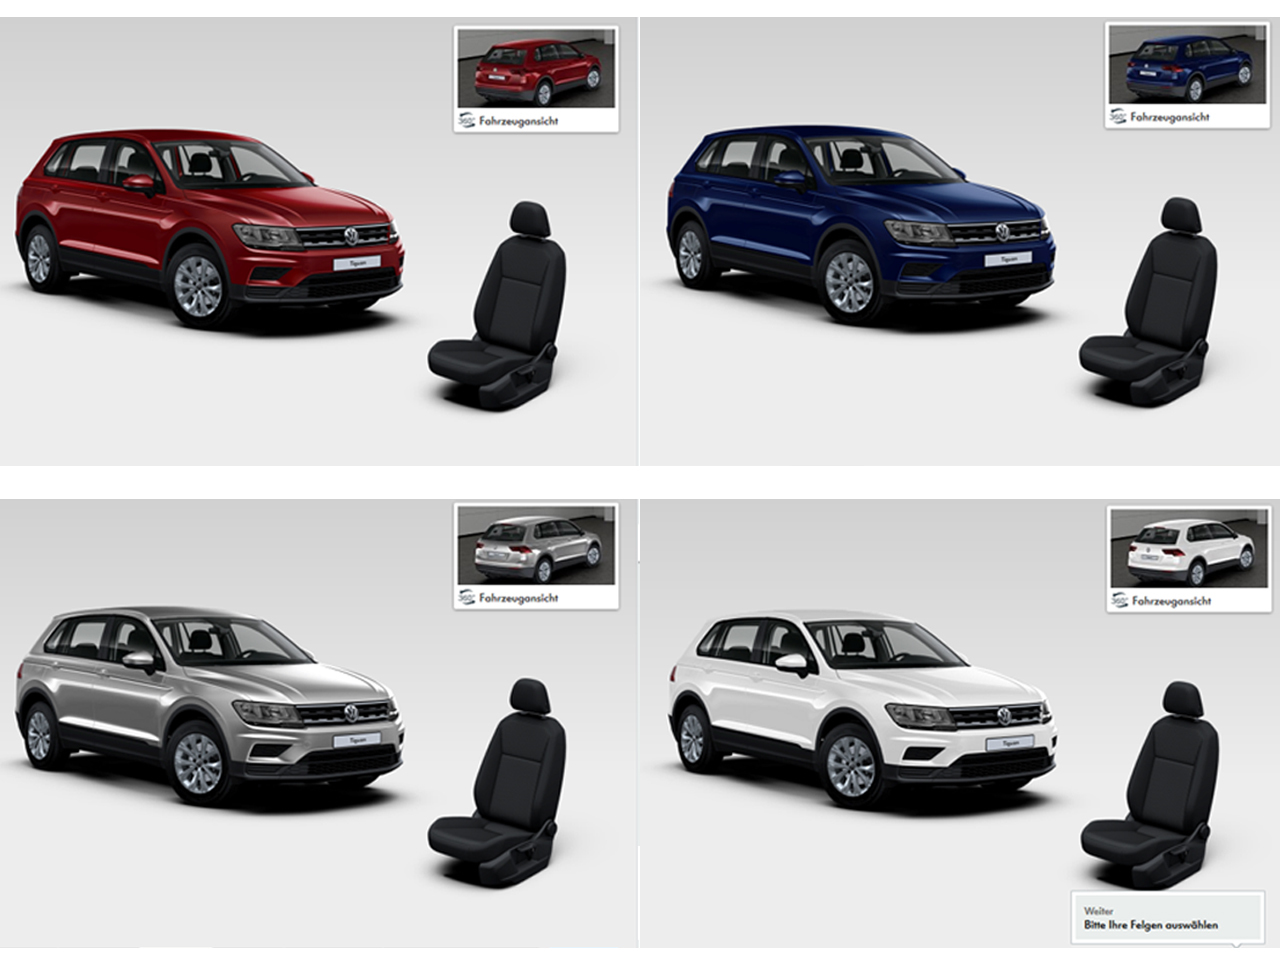 volkswagen tiguan 2016 fiches techniques configurateur et prix photo 1 l 39 argus. Black Bedroom Furniture Sets. Home Design Ideas